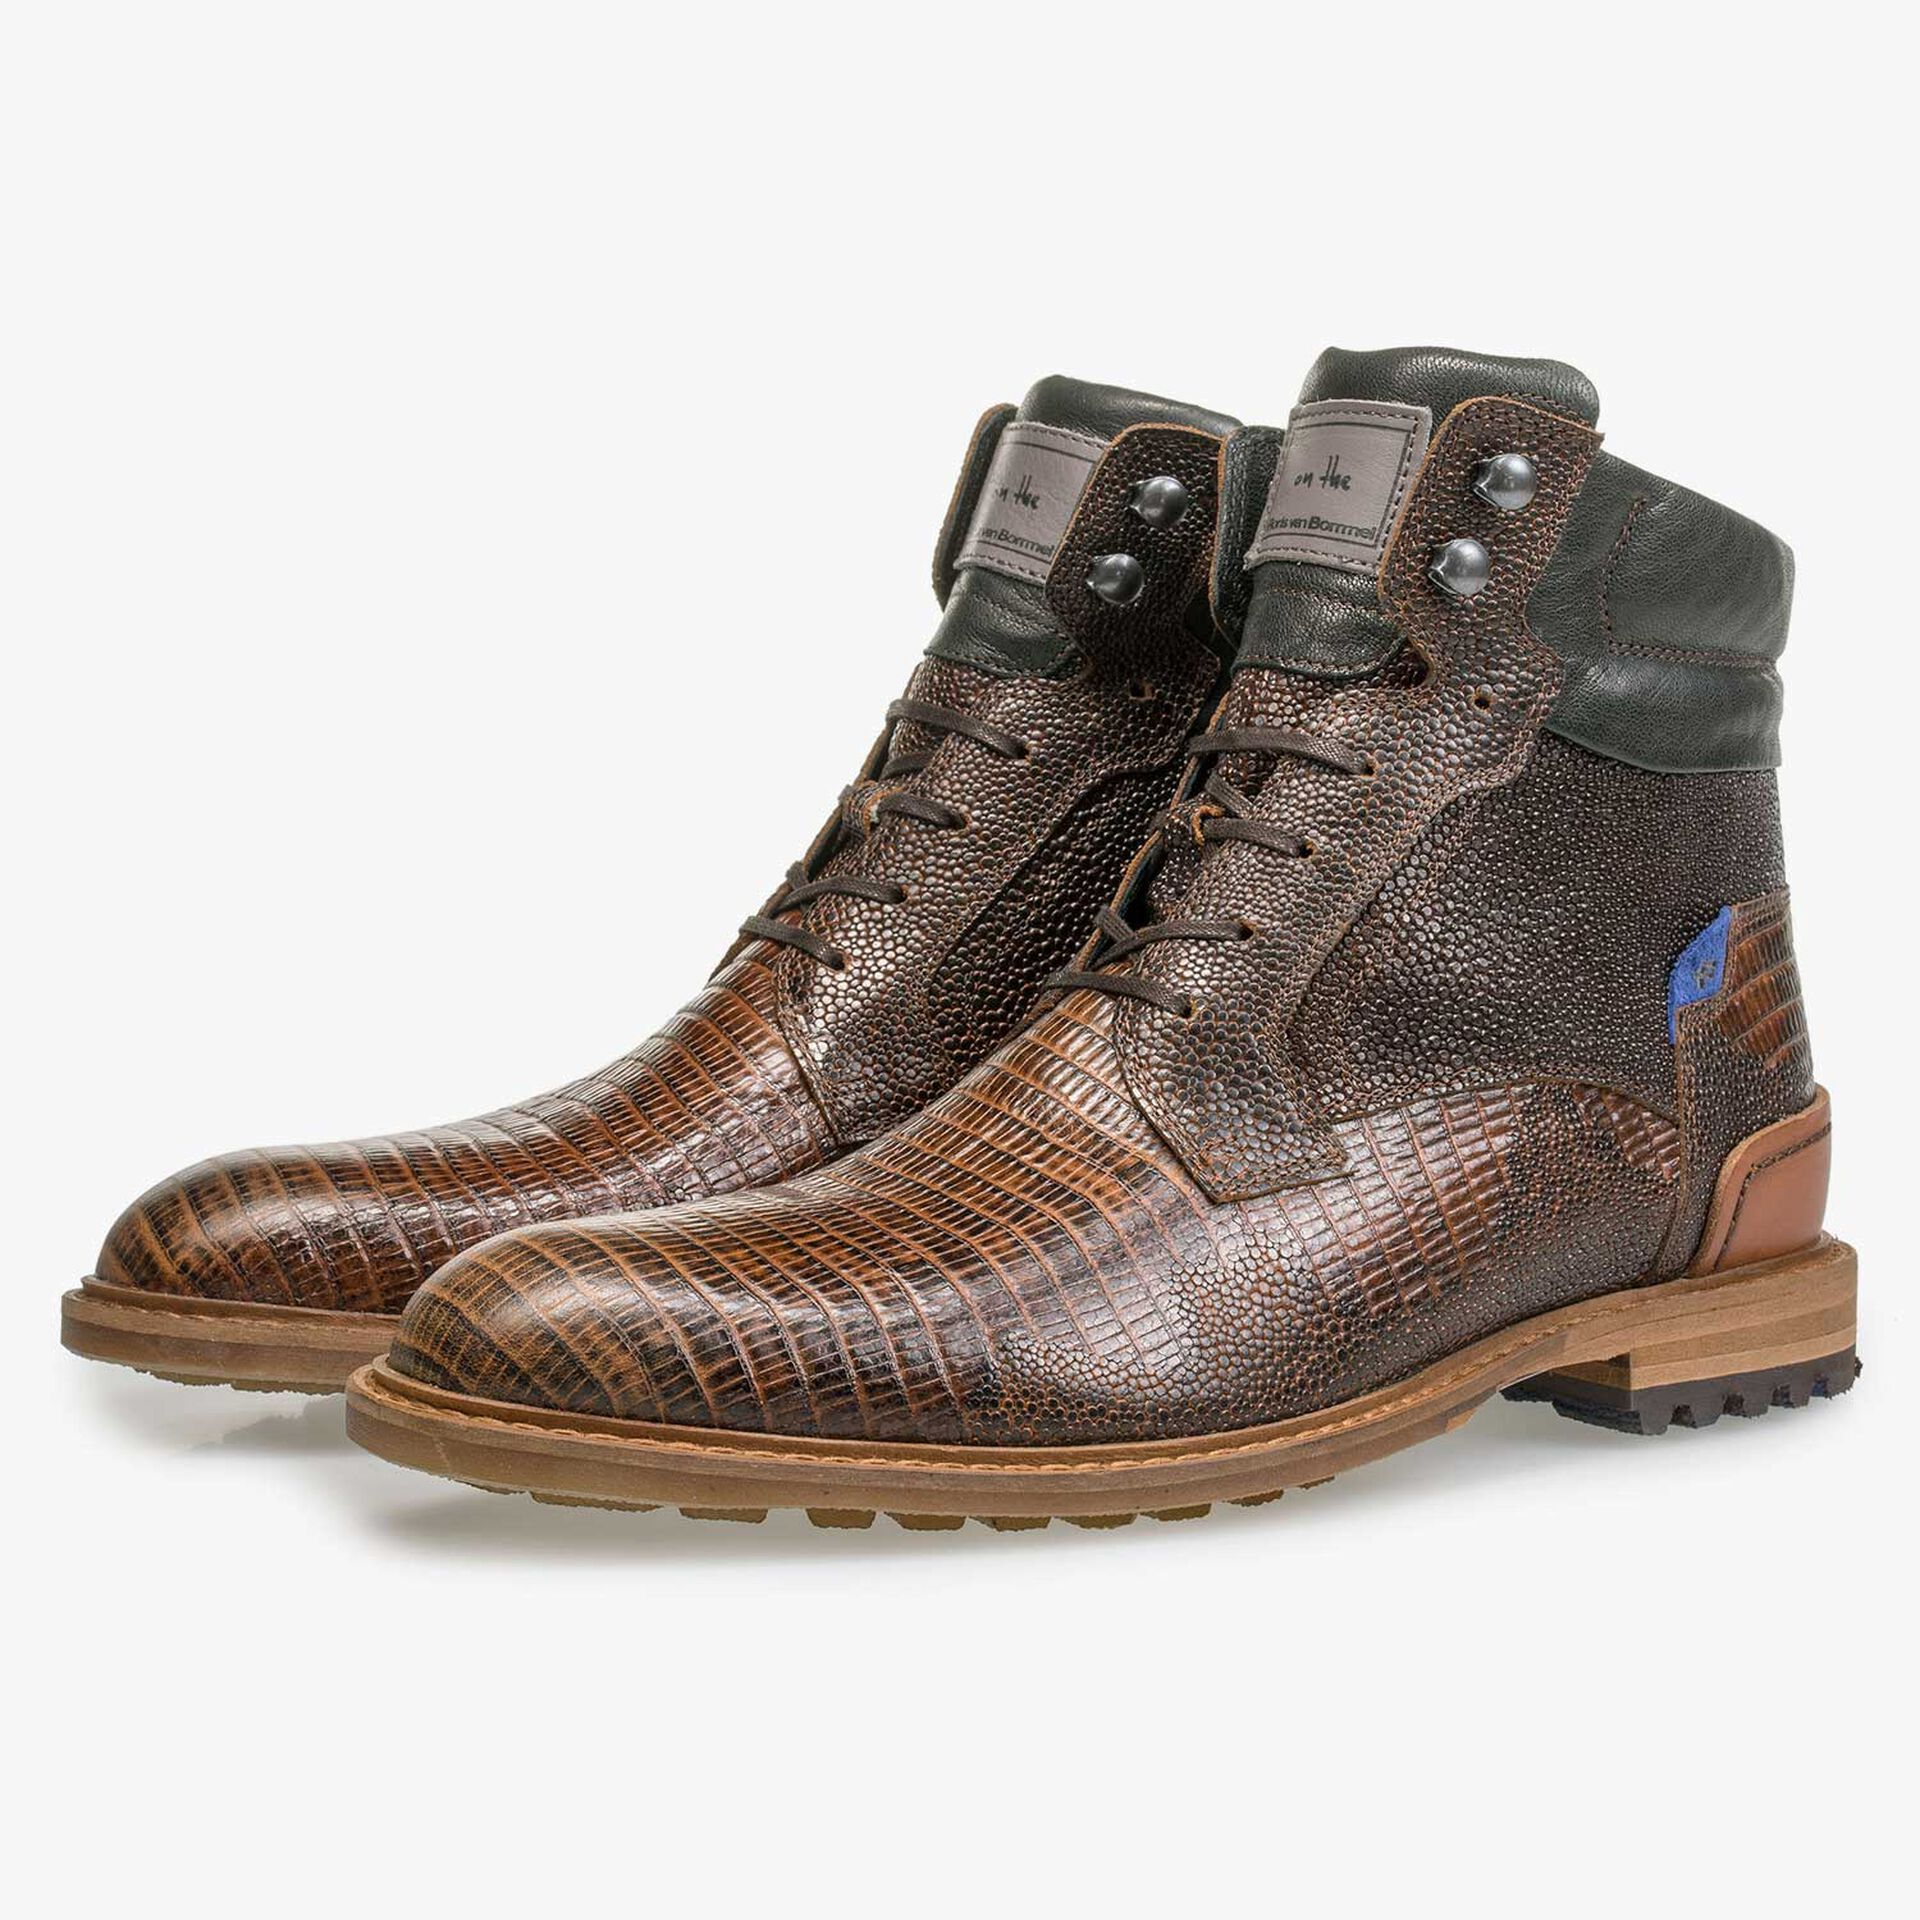 Cognac-coloured leather lace boot with lizard print